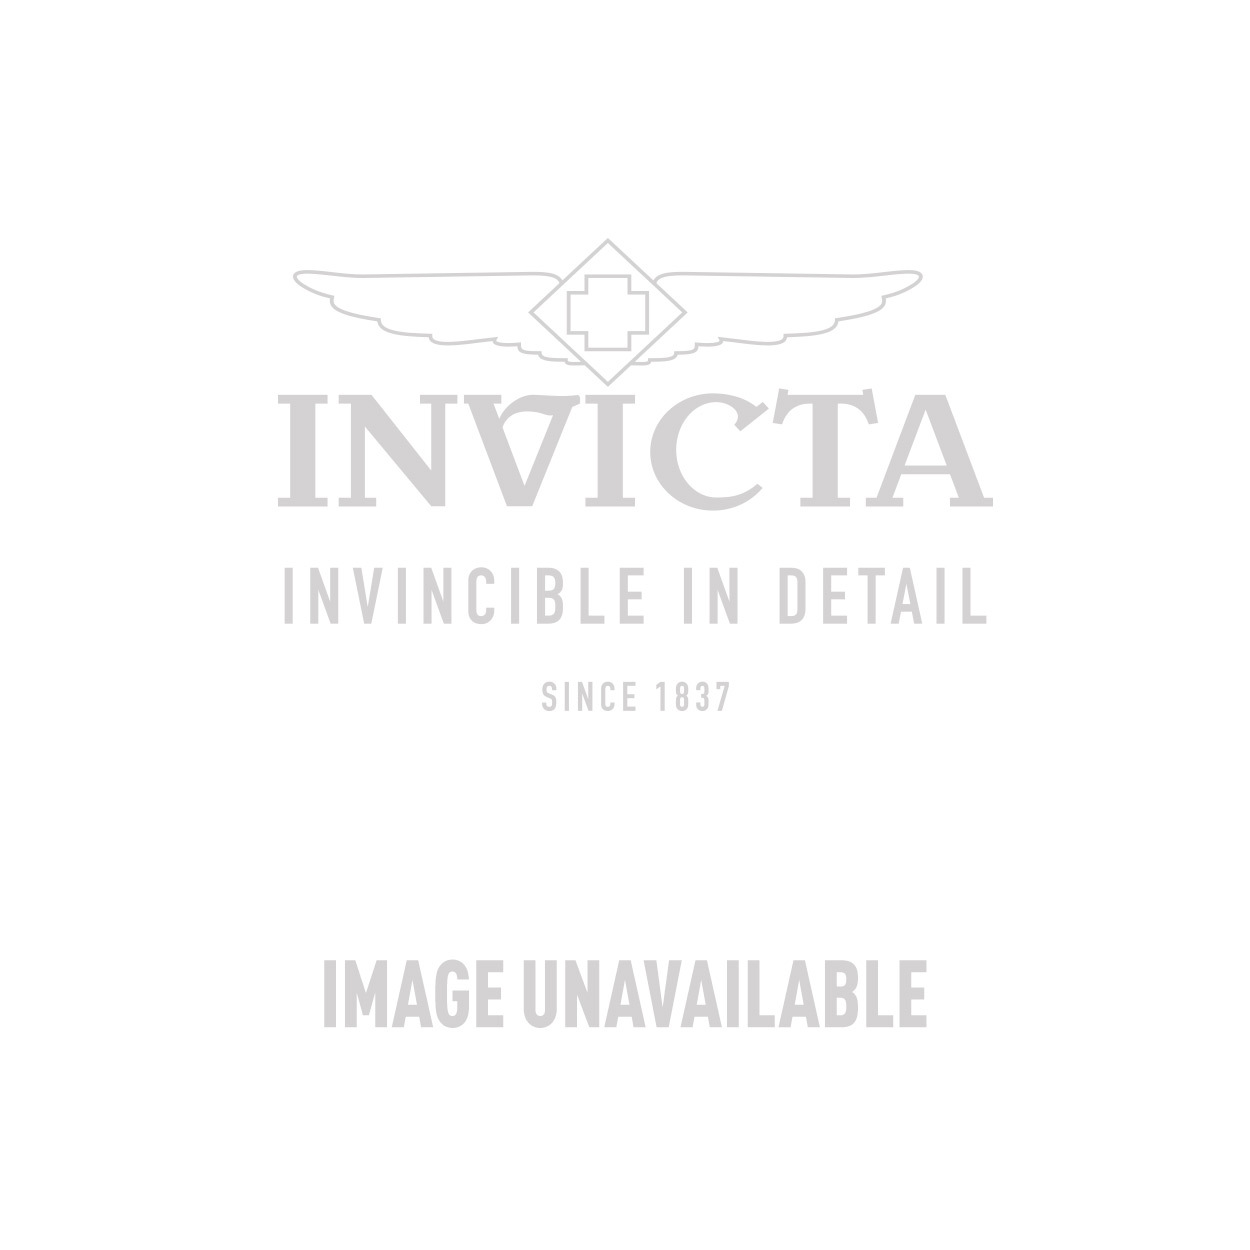 Invicta Vintage Mechanical Watch - Black, Stainless Steel case with Black tone Leather band - Model 18600